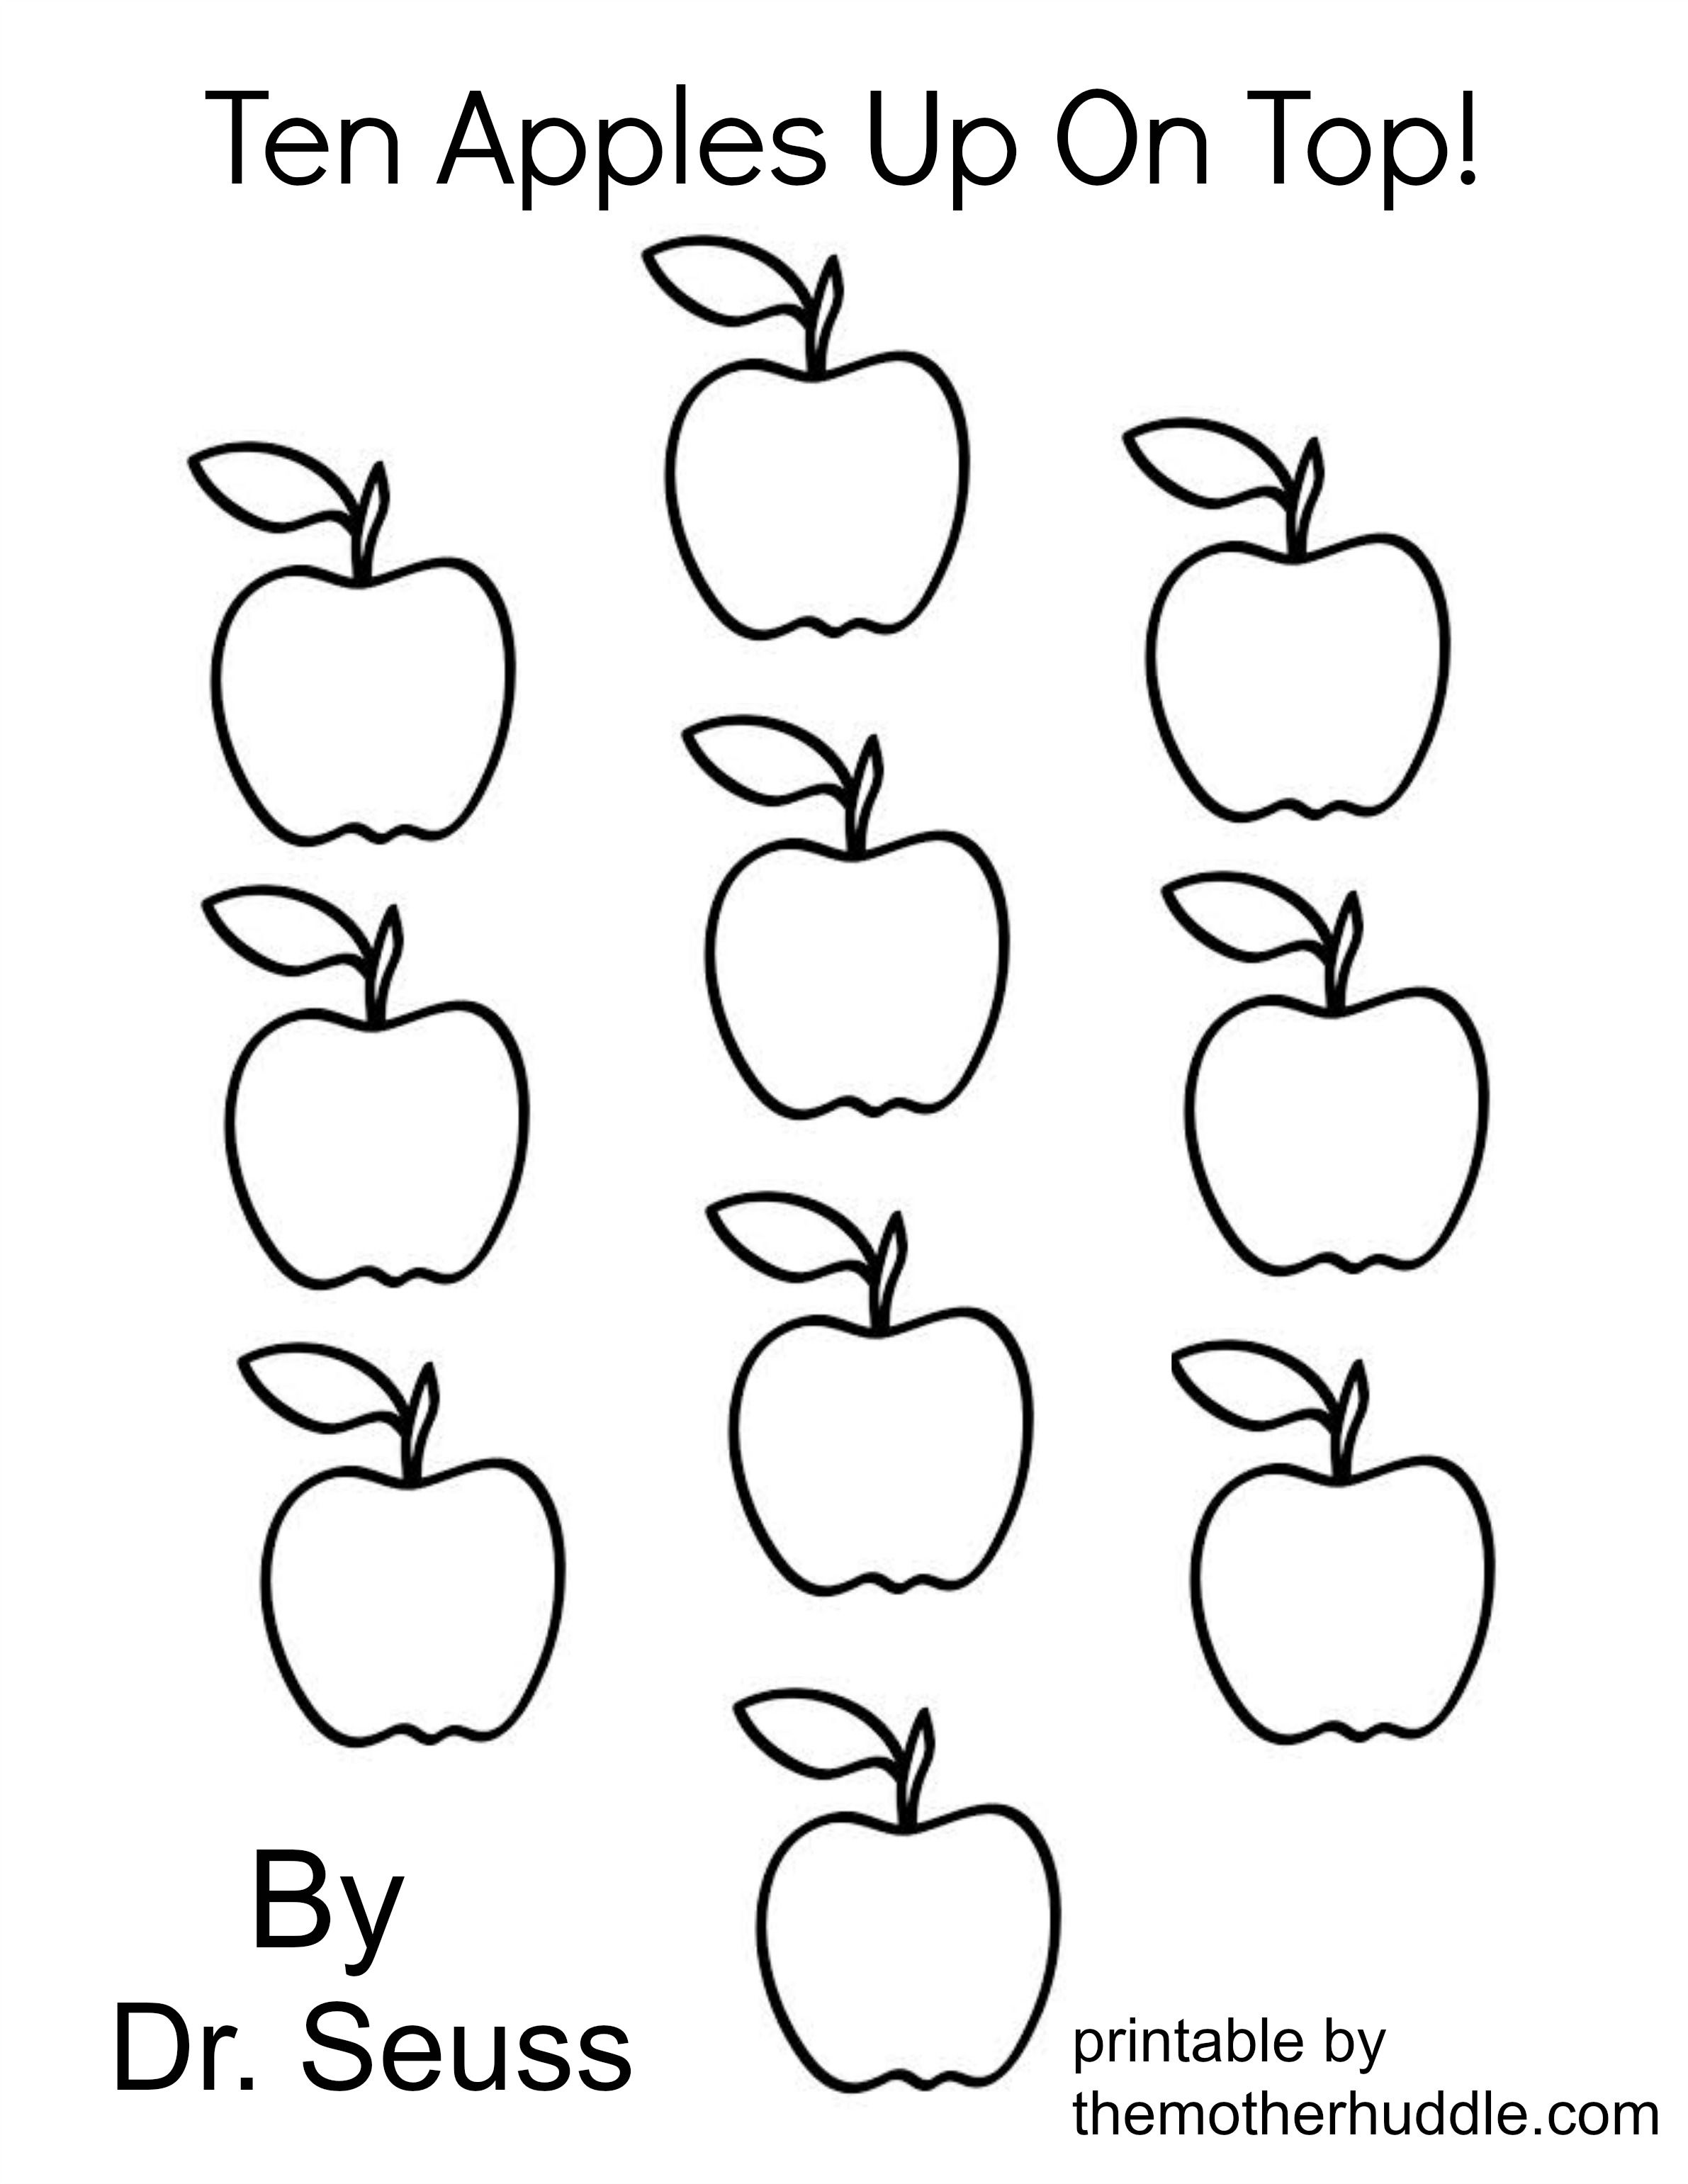 Dr Seuss March Series Ten Apples Up On Top Free Printable Dr Seuss Coloring Pages Dr Seuss Crafts Dr Seuss Activities